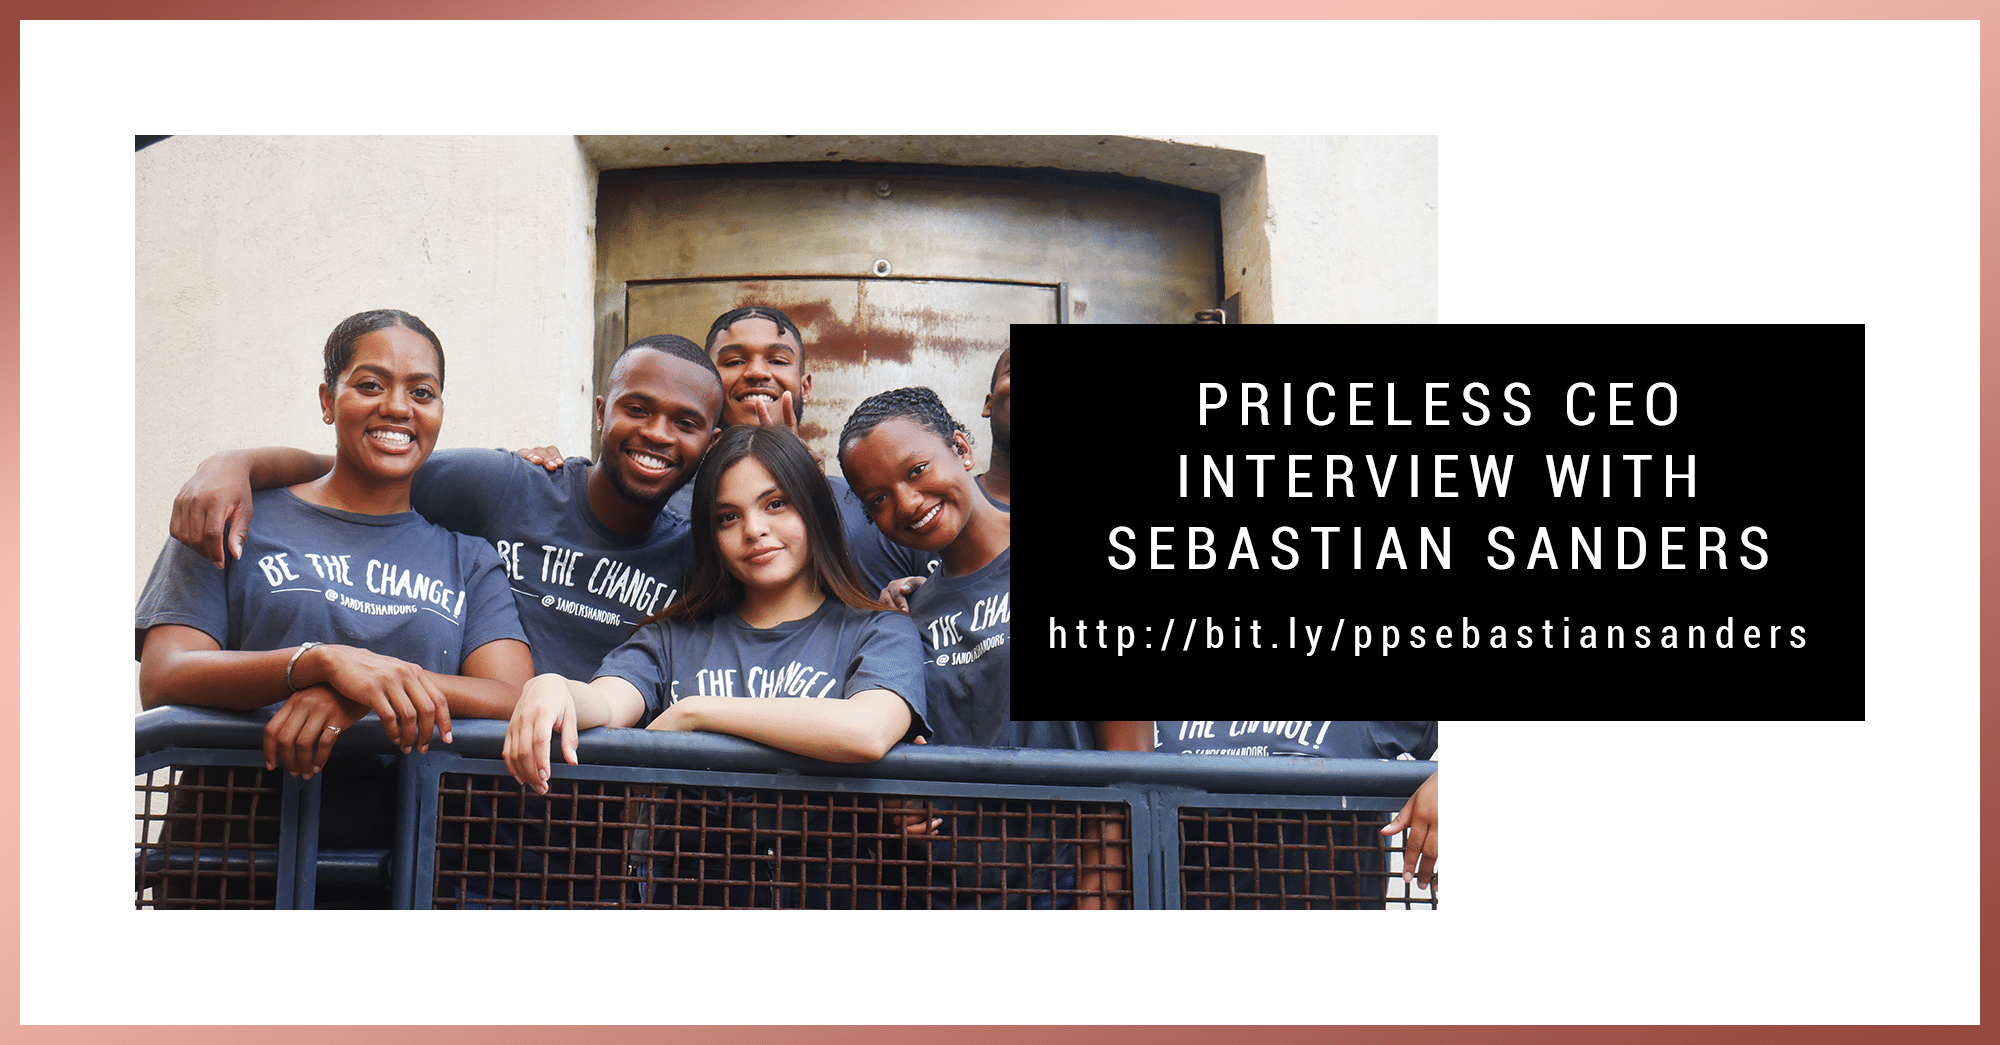 Priceless CEO Interview with Sebastian Sanders - Priceless Planning